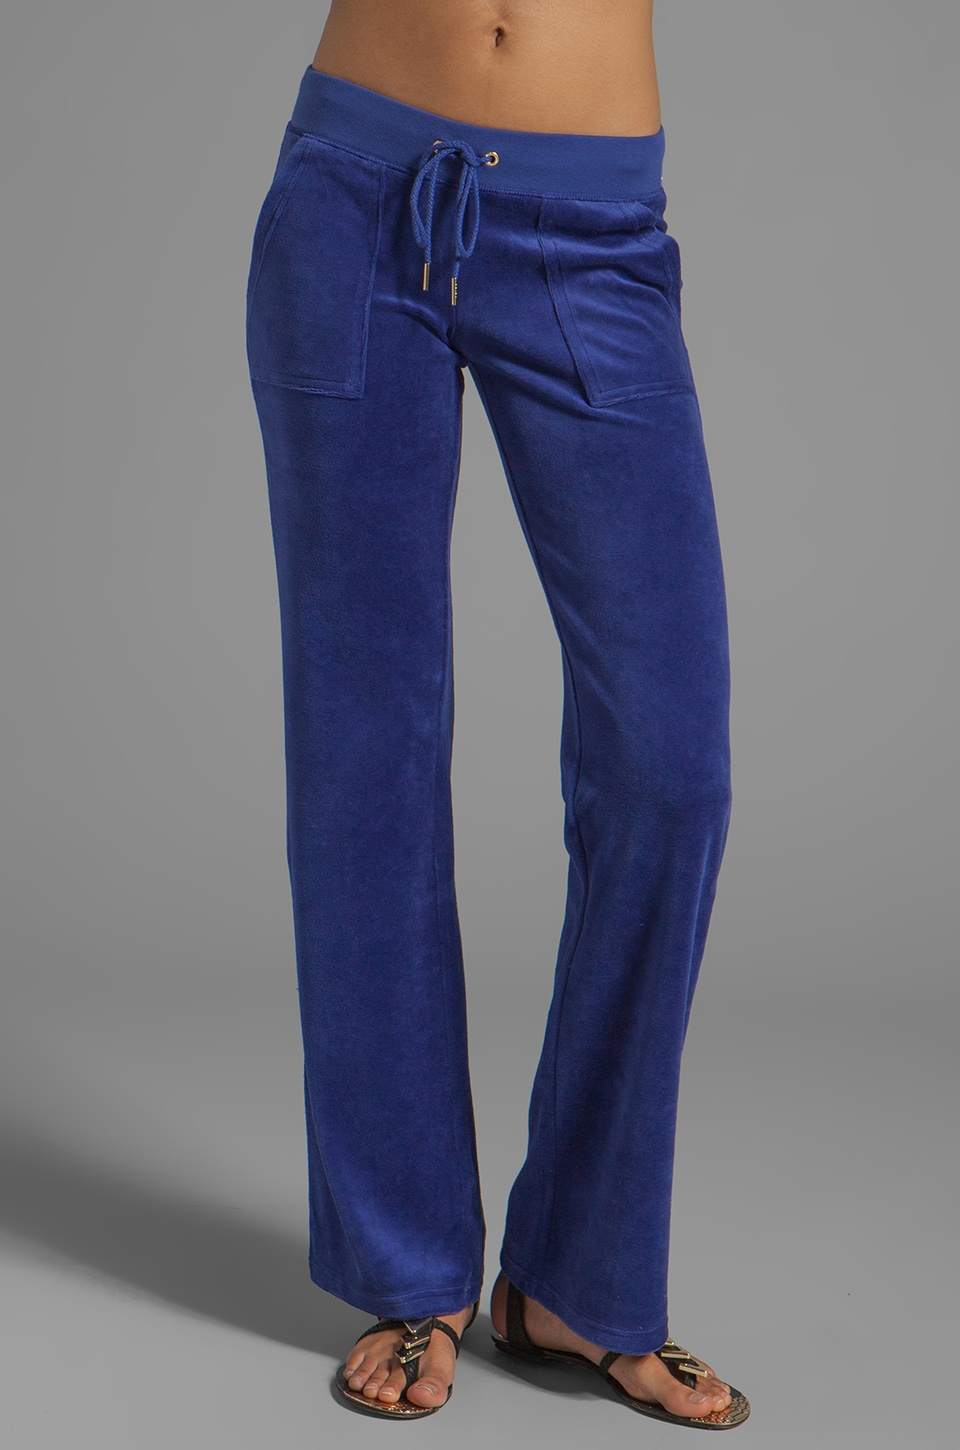 Juicy Couture Velour Blind Bootcut Pant in Dark Cobalt